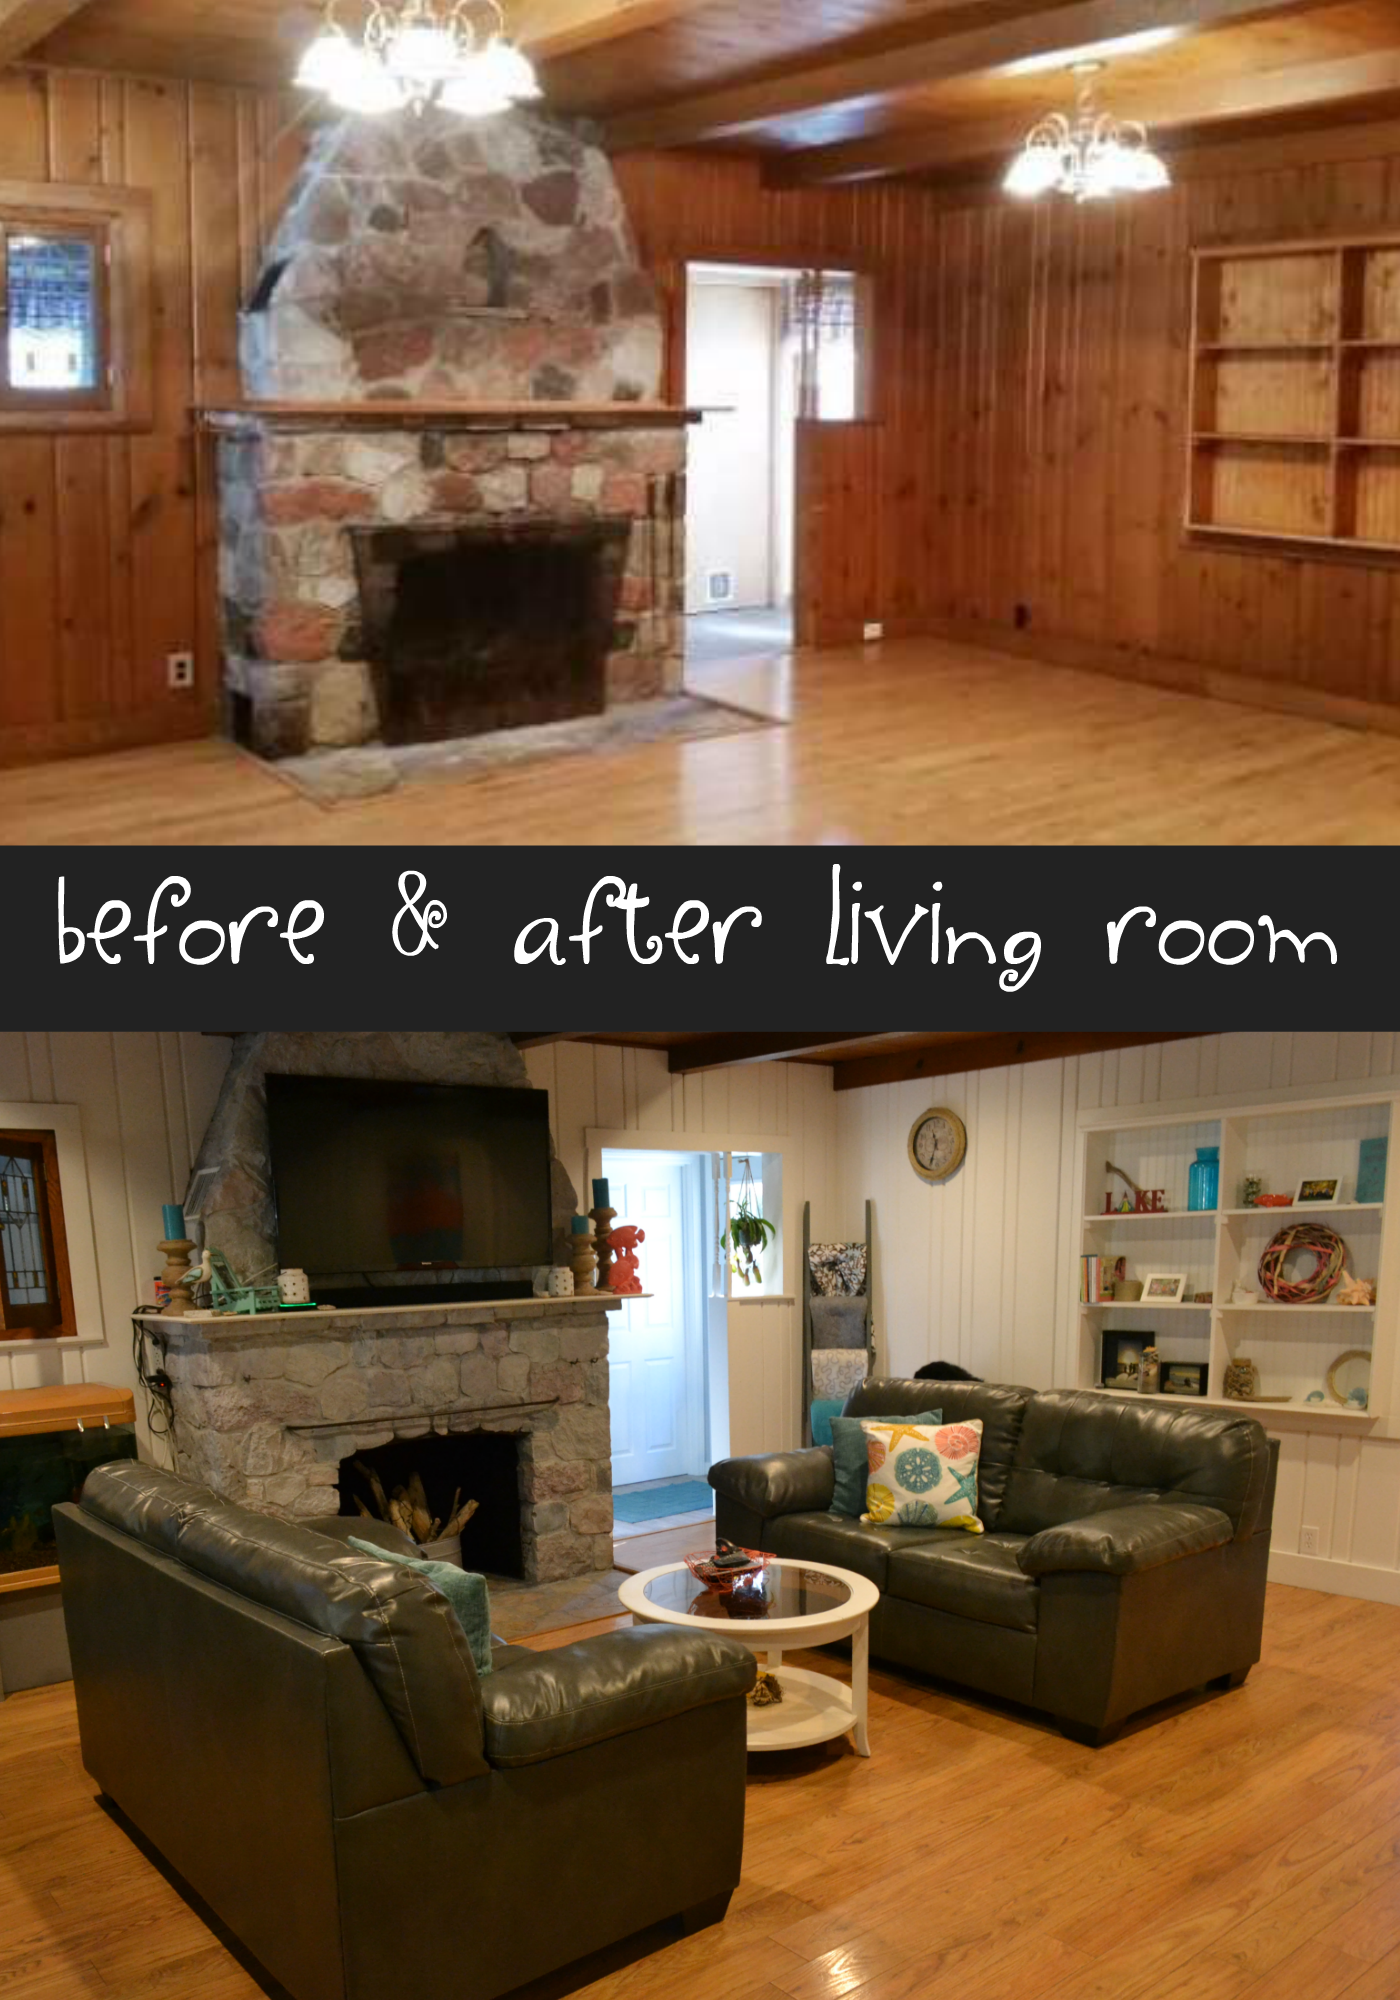 Before And After Living Room Remodel Coastal Living Room Remodel Painted Wood Paneling Wood Floors And A White Washed Stone Fireplace Beautiful Www